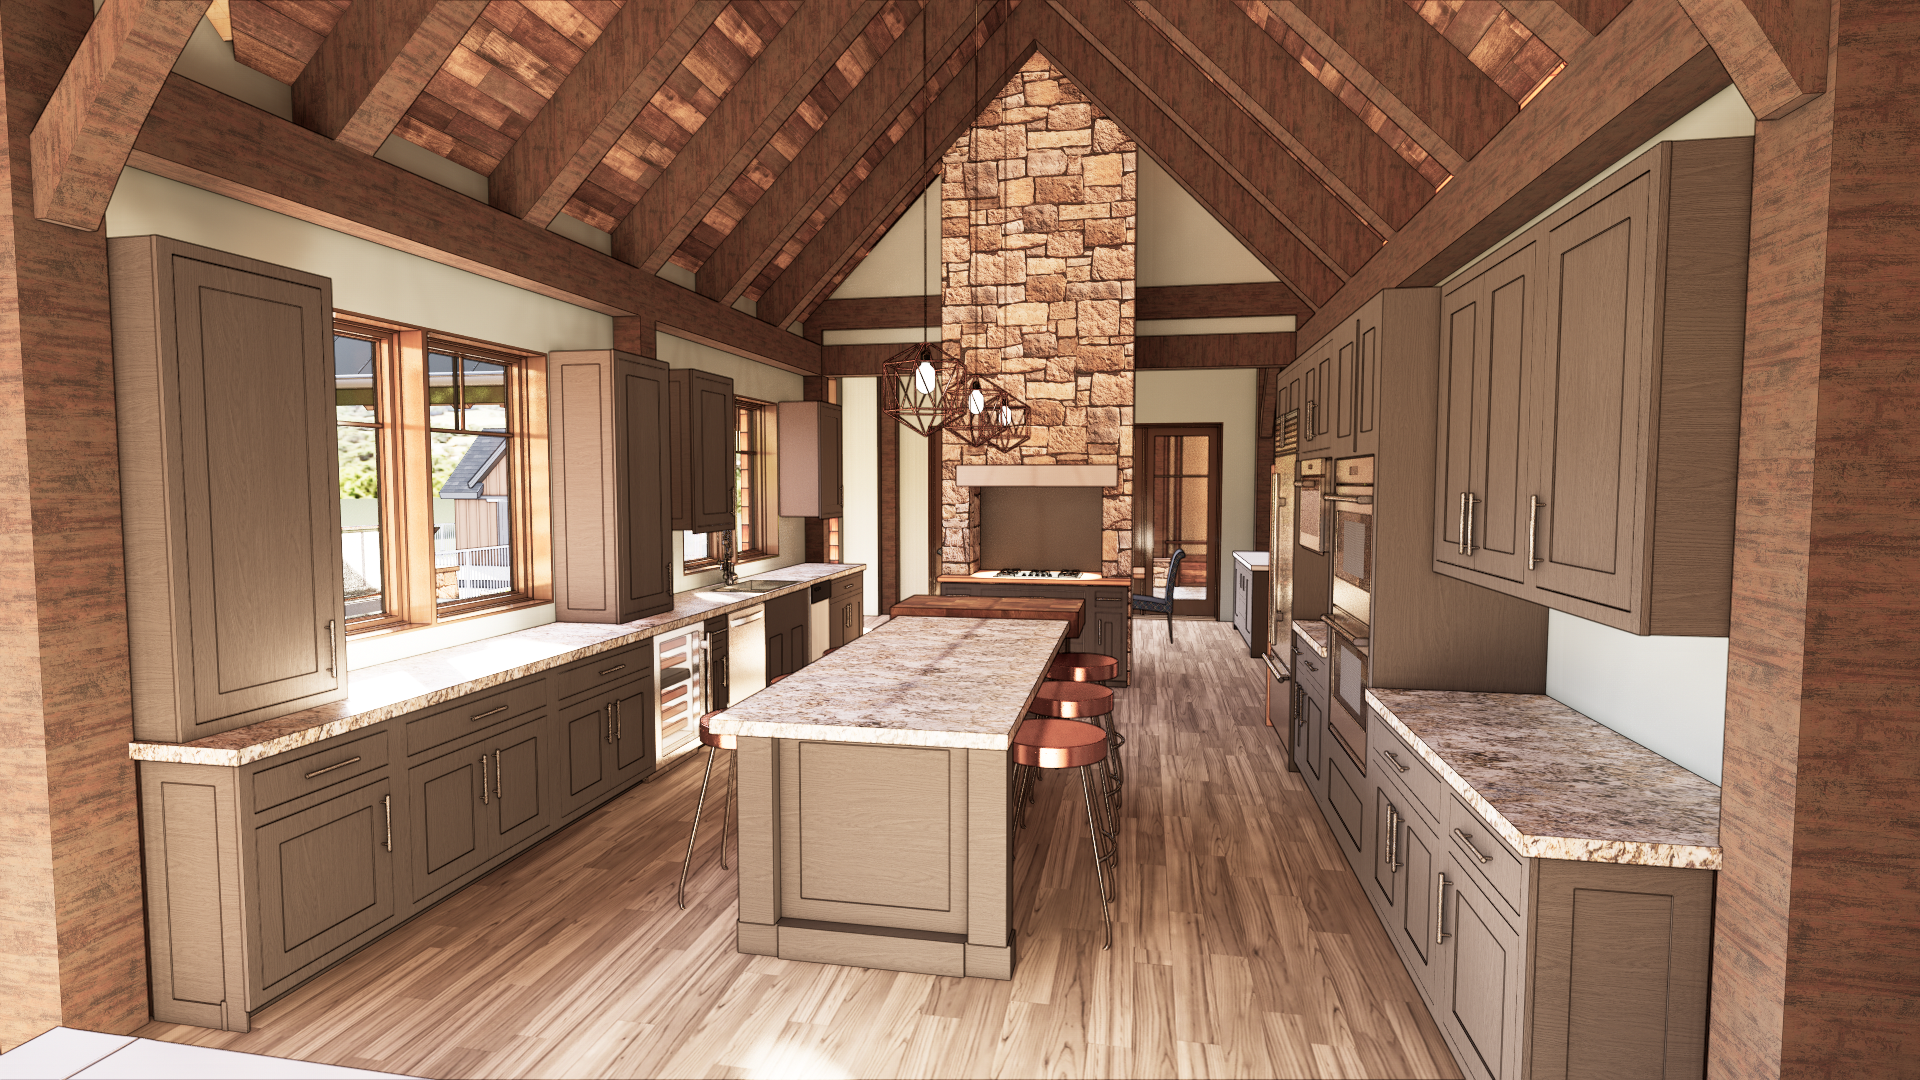 Custom Kitchens created in Design from NEWwoodworks